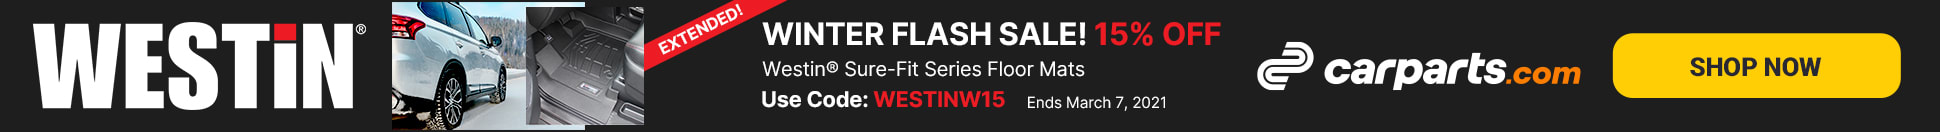 westin sure-fit series flash sale extended